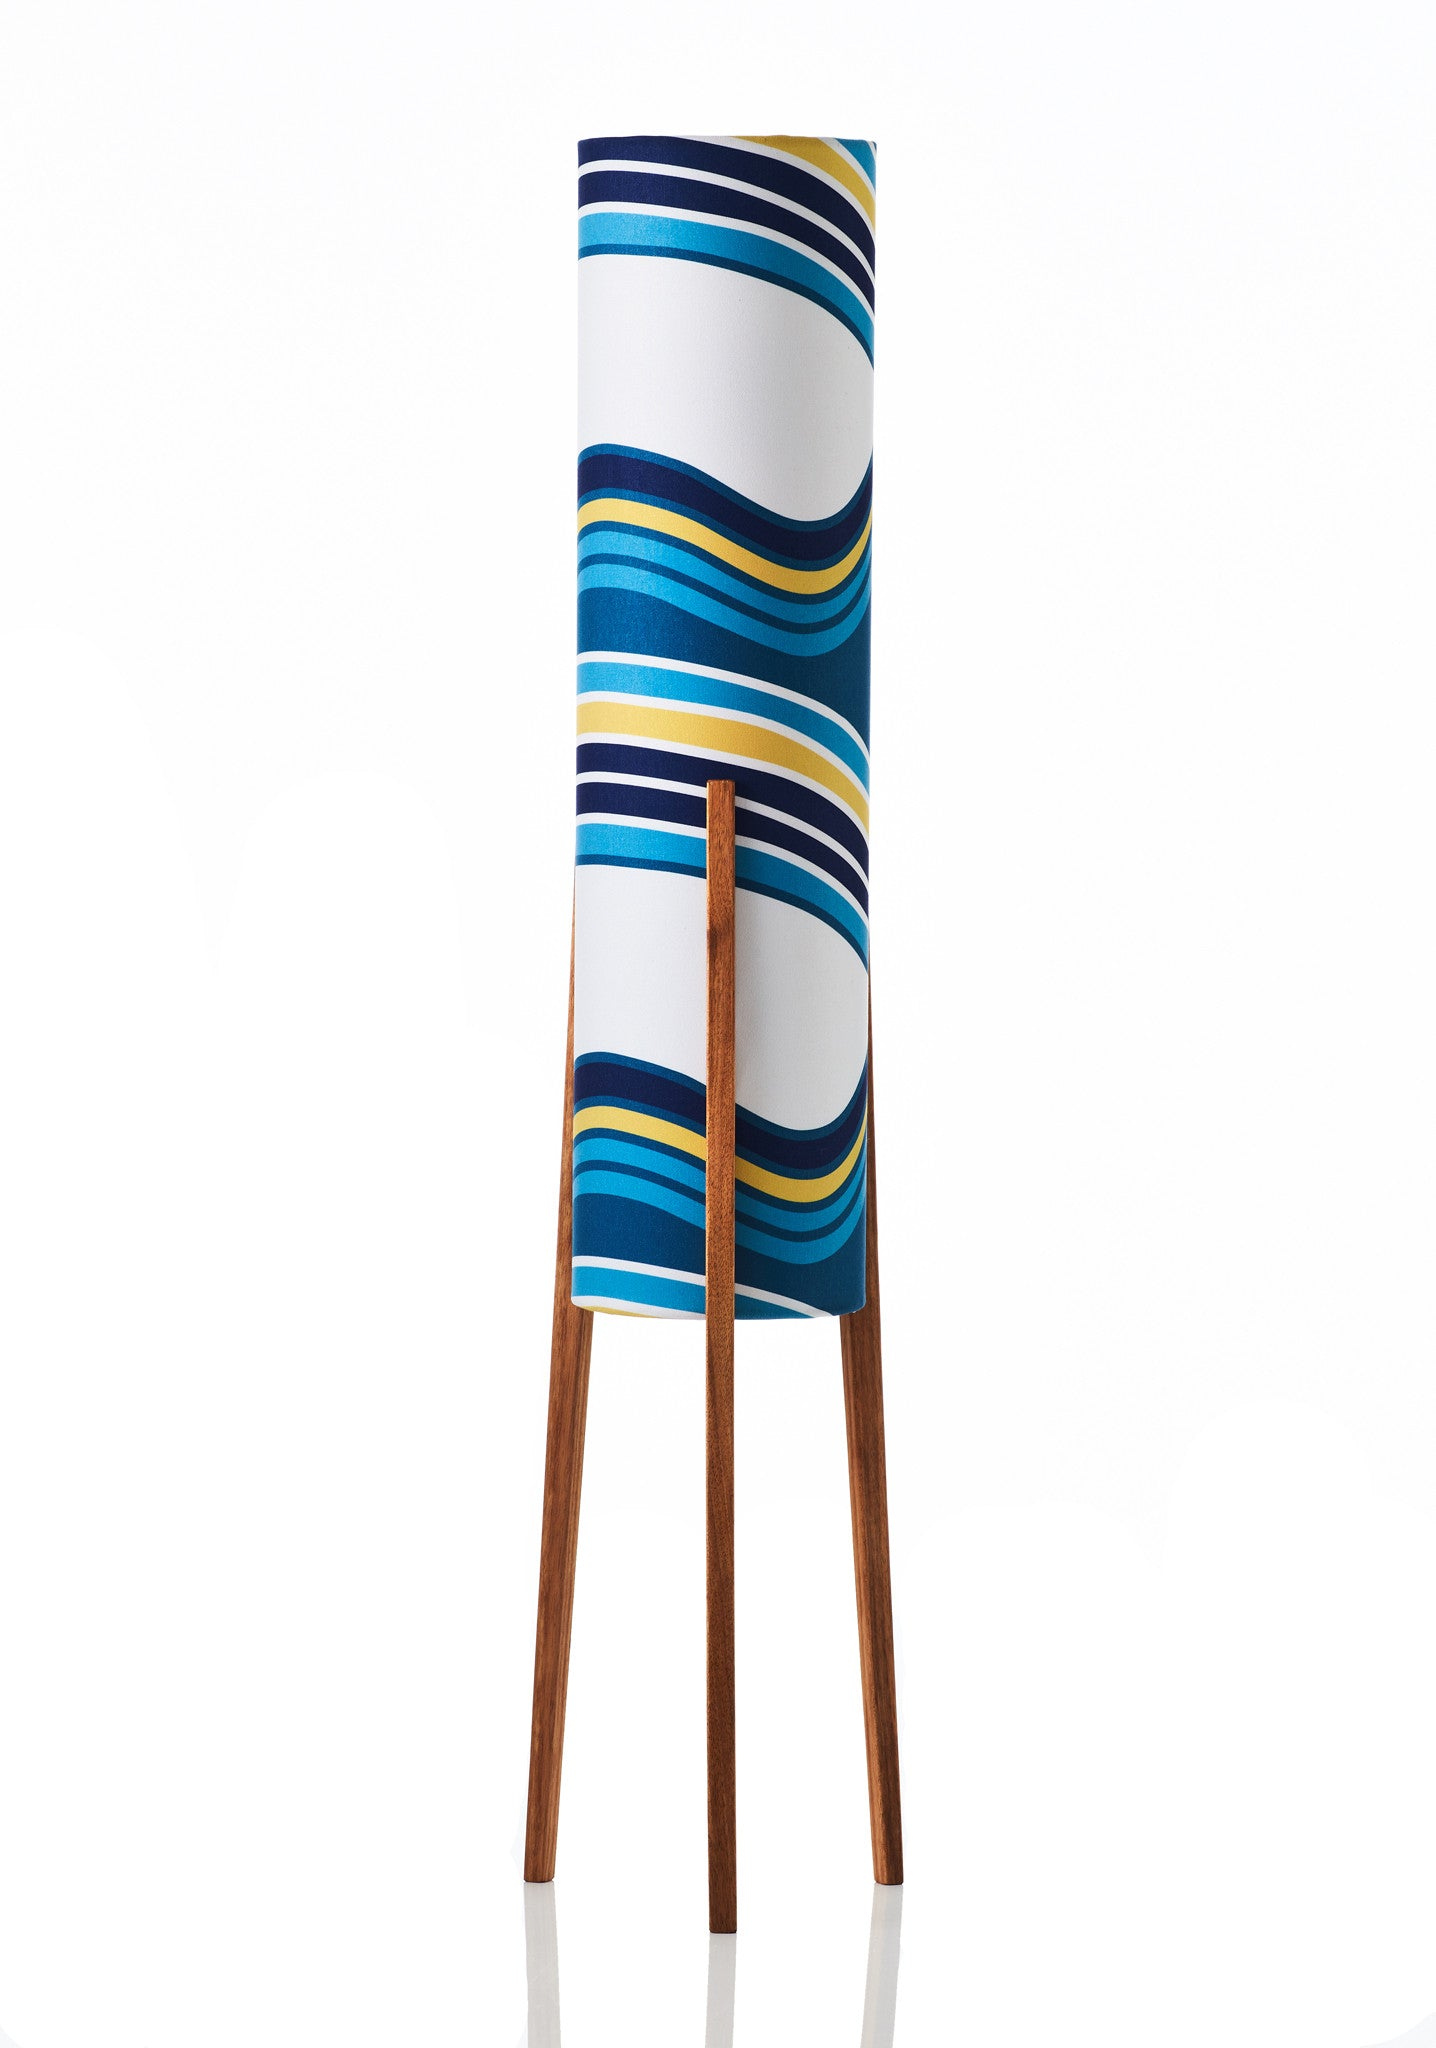 Rocket Floor Lamp Medium - Laava Ocean